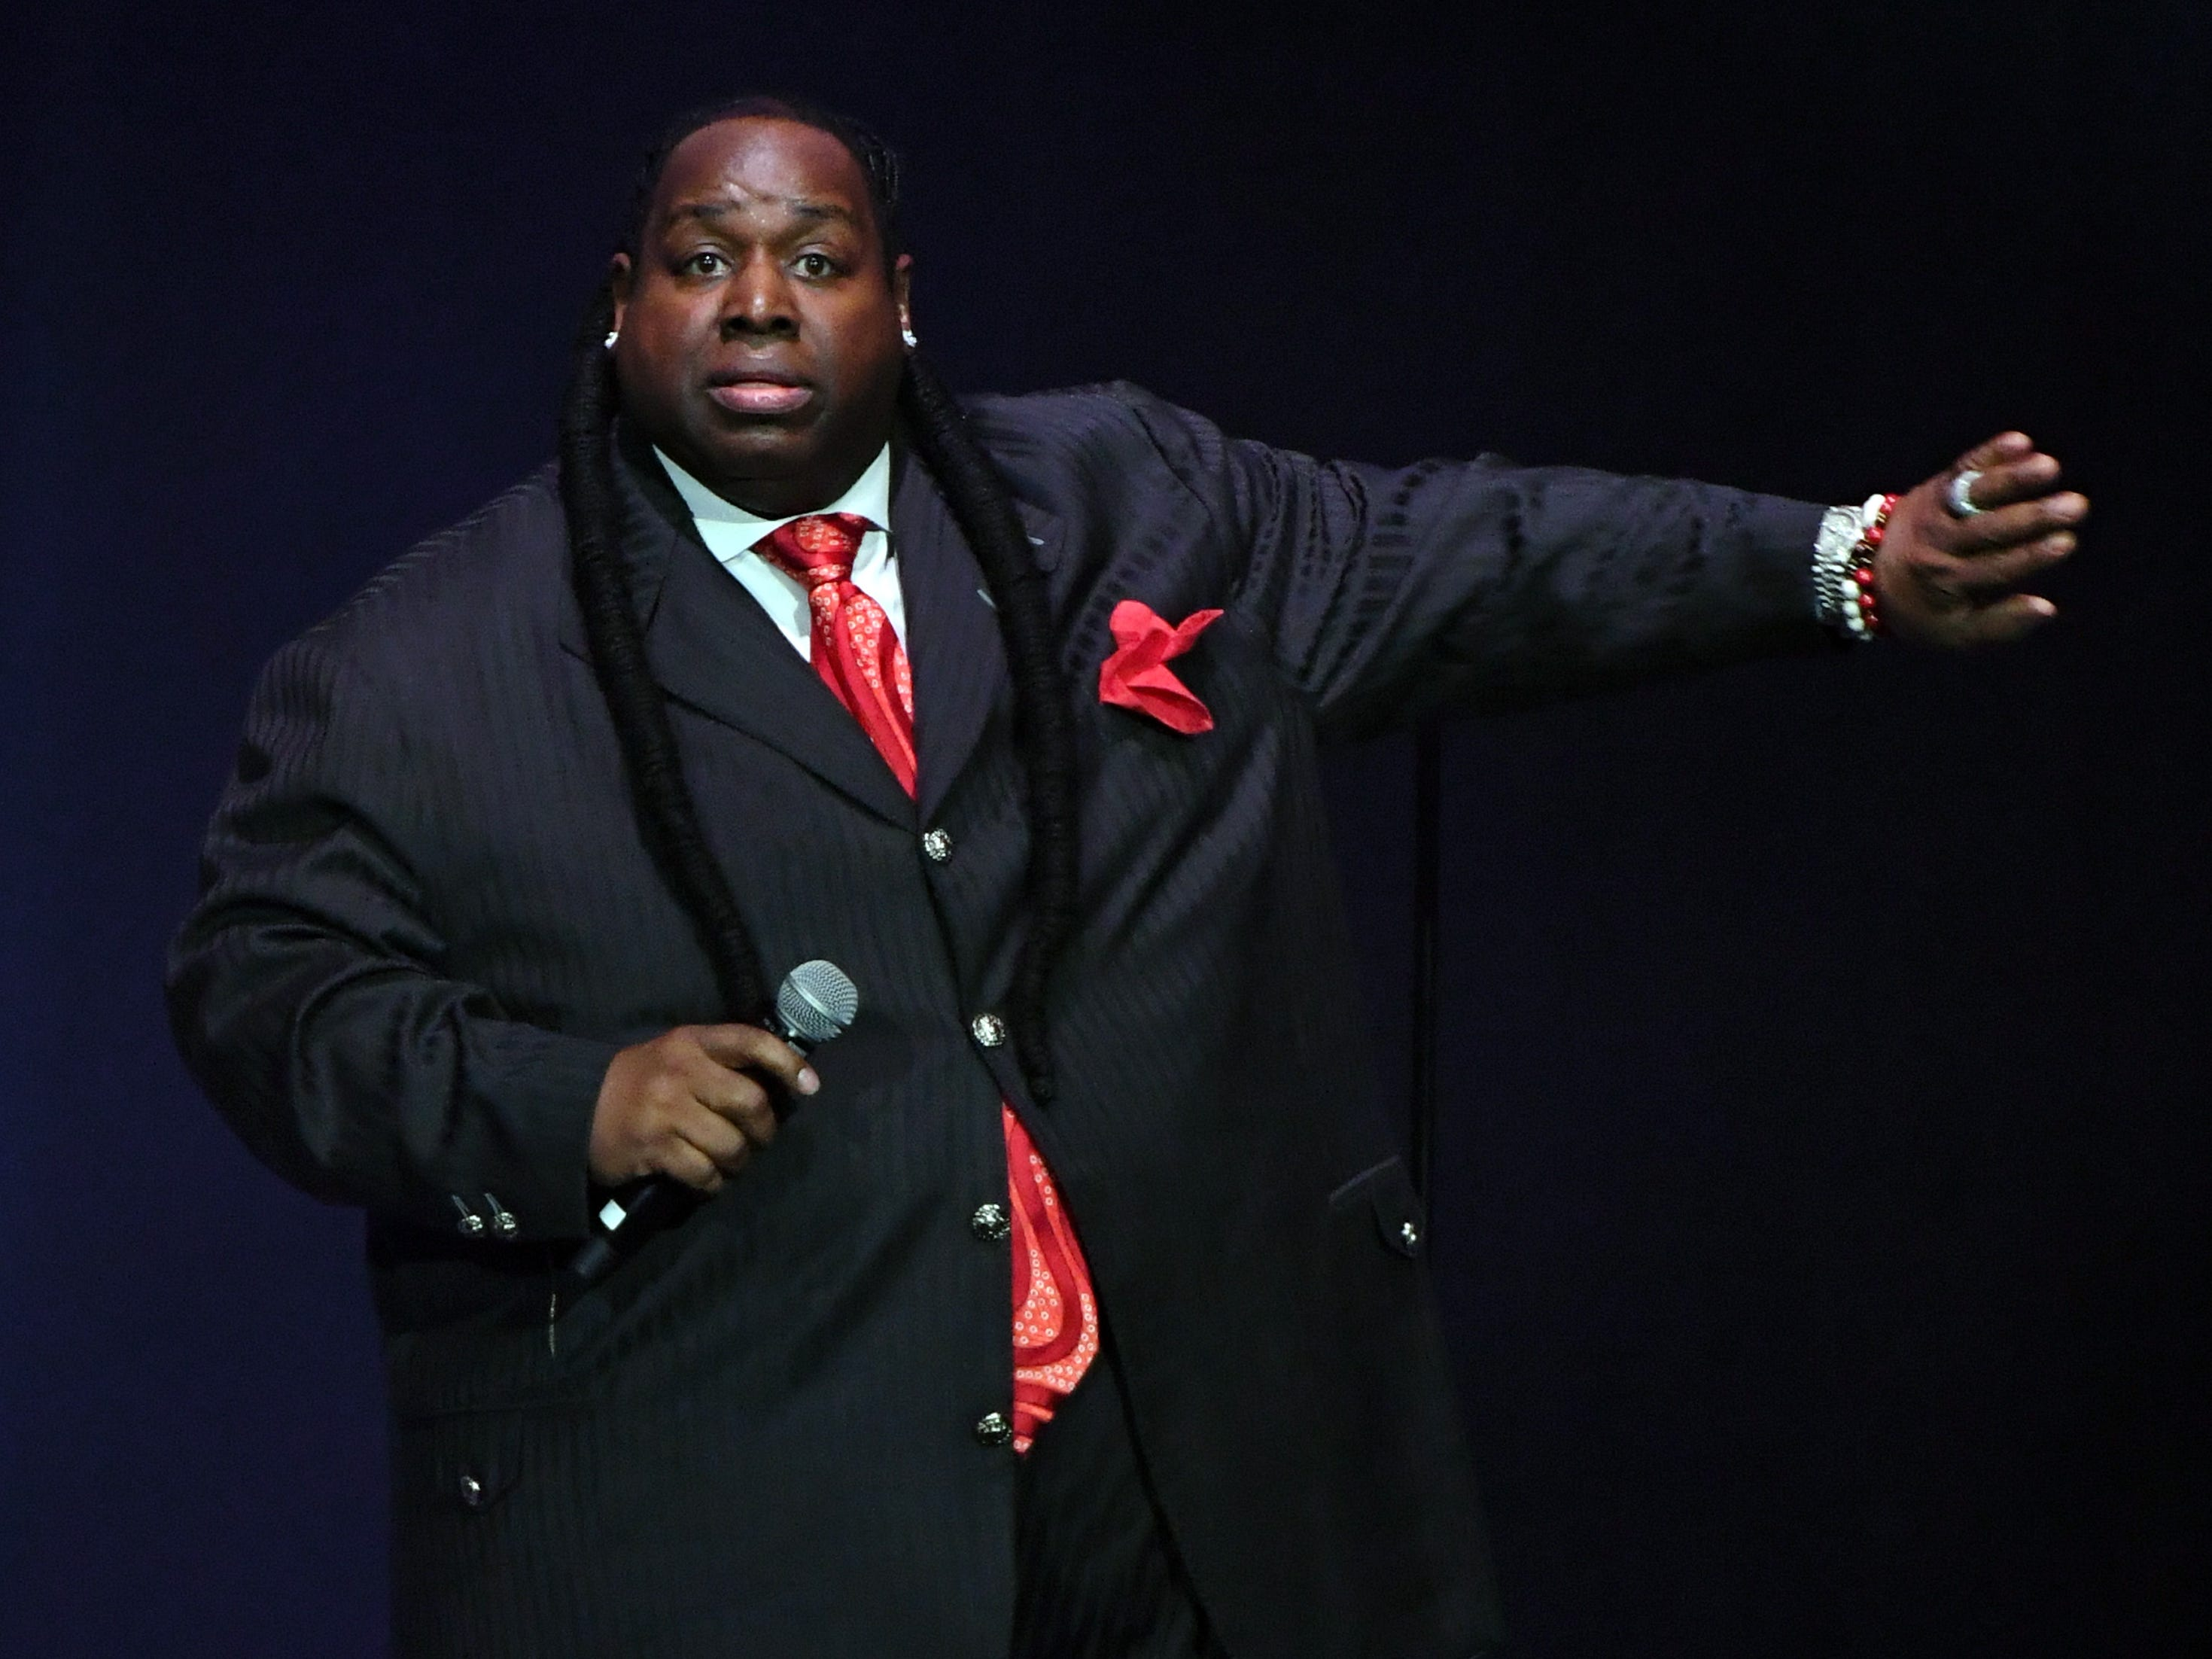 Bruce Bruce performs at Helium Comedy Club in Indianapolis on March 15-17, 2019.